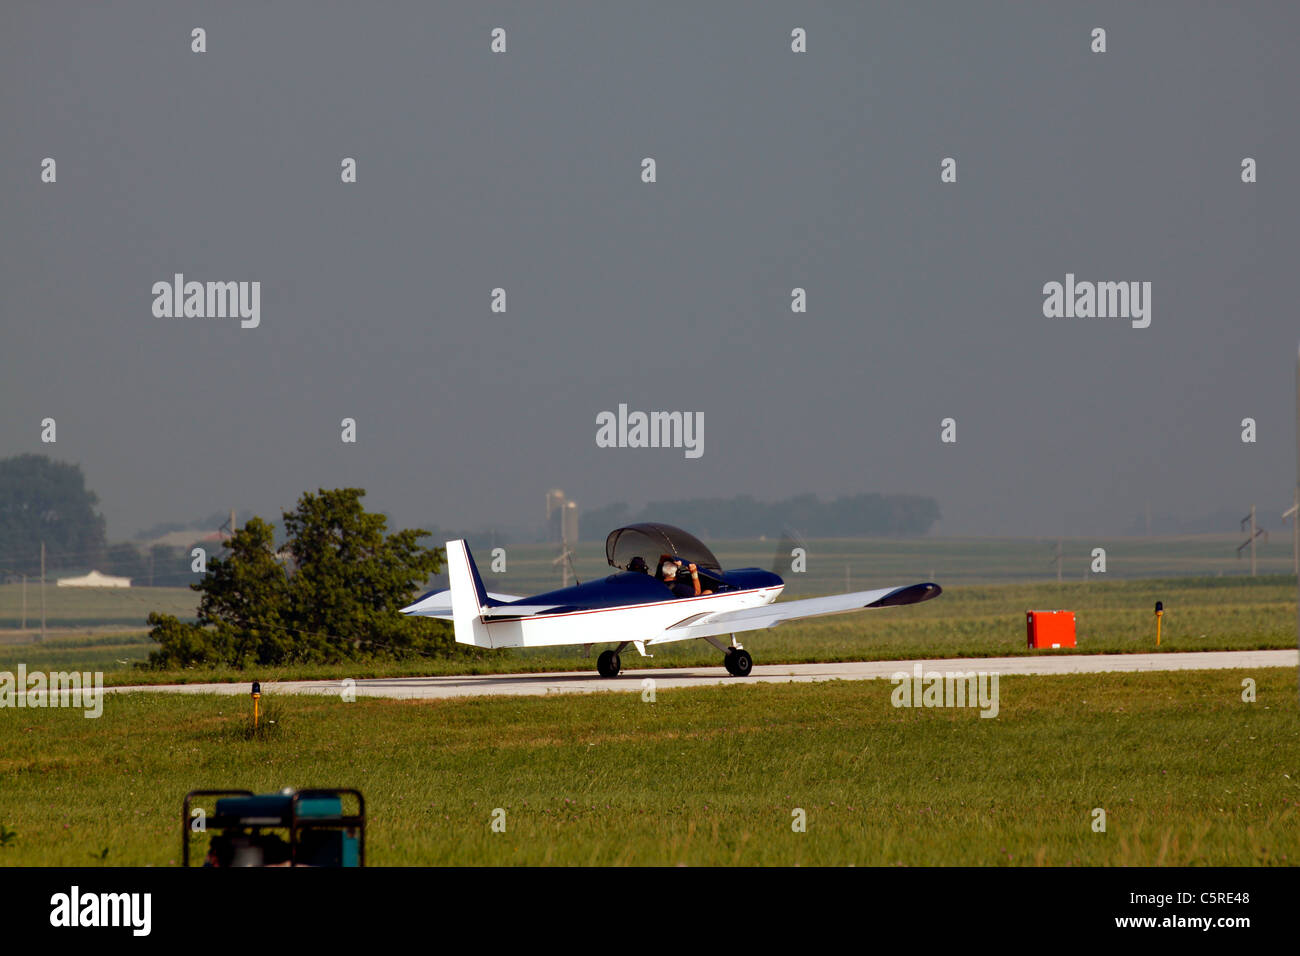 Aircraft preparing to take off in approaching stormy weather - Stock Image